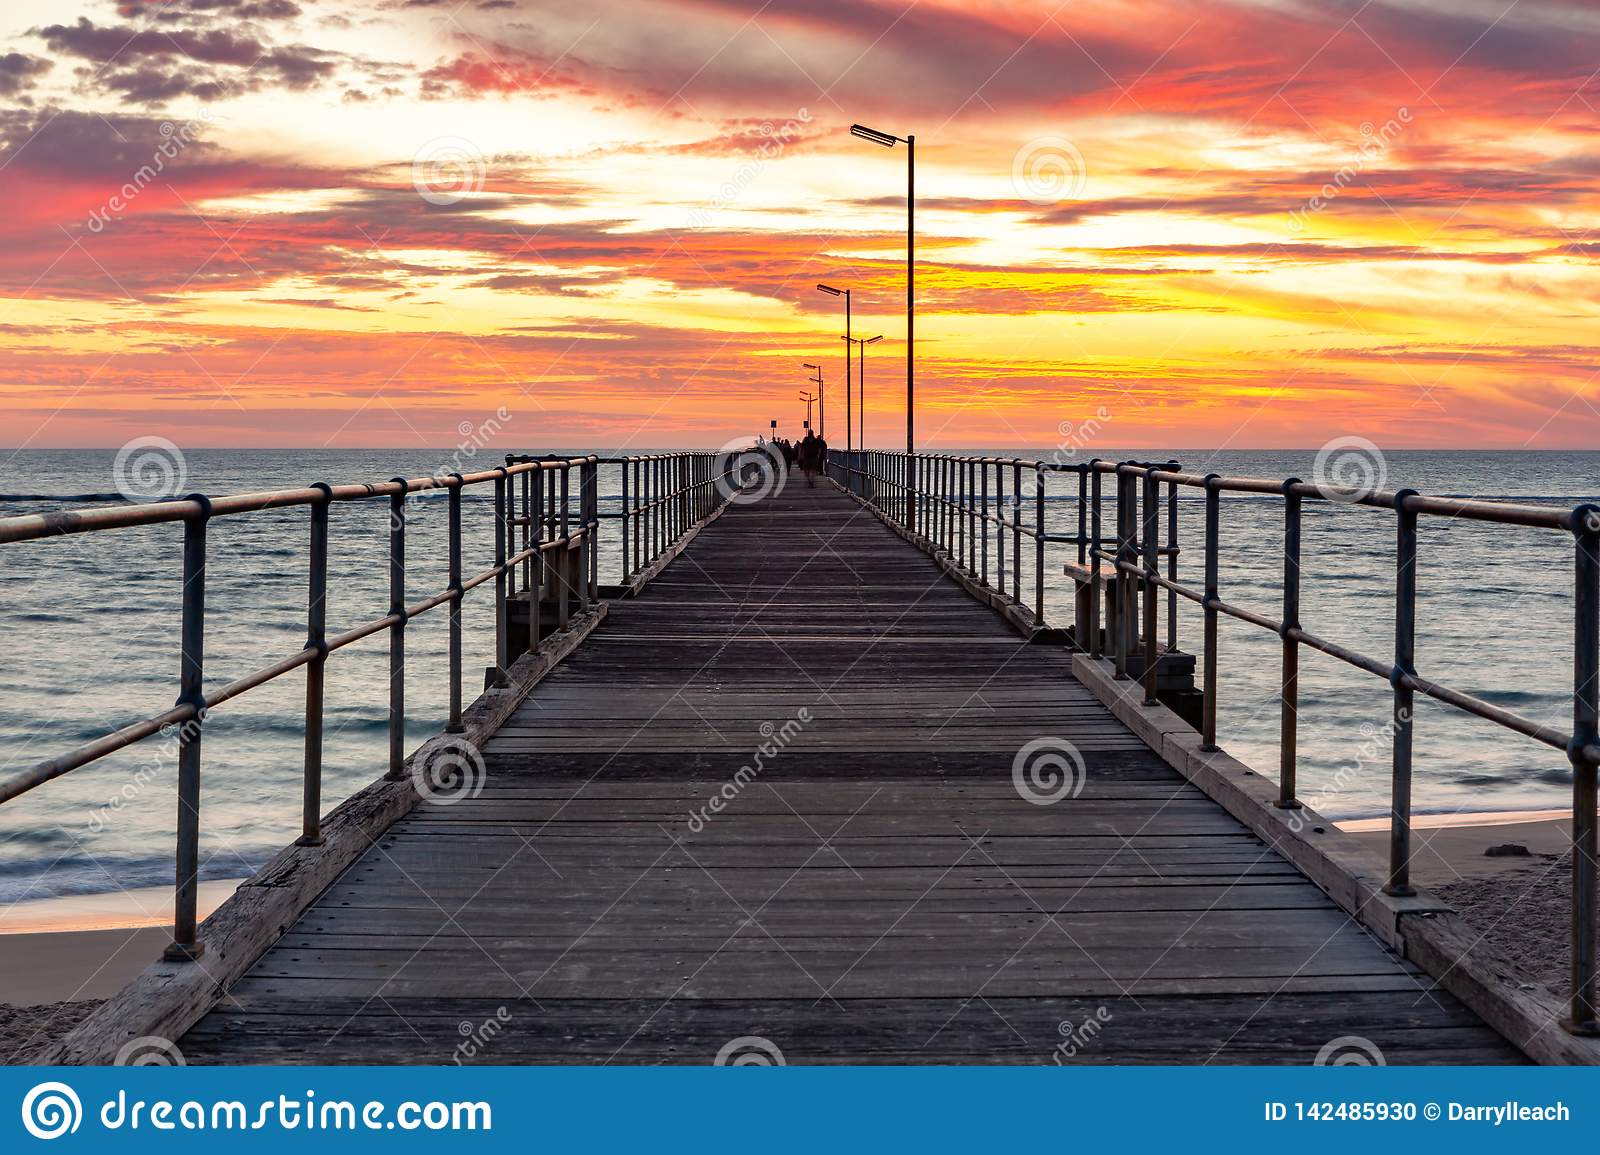 A beautiful sunset at Port Noarlunga on the jetty at Port Noarlunga South Australia on 18th March 2019